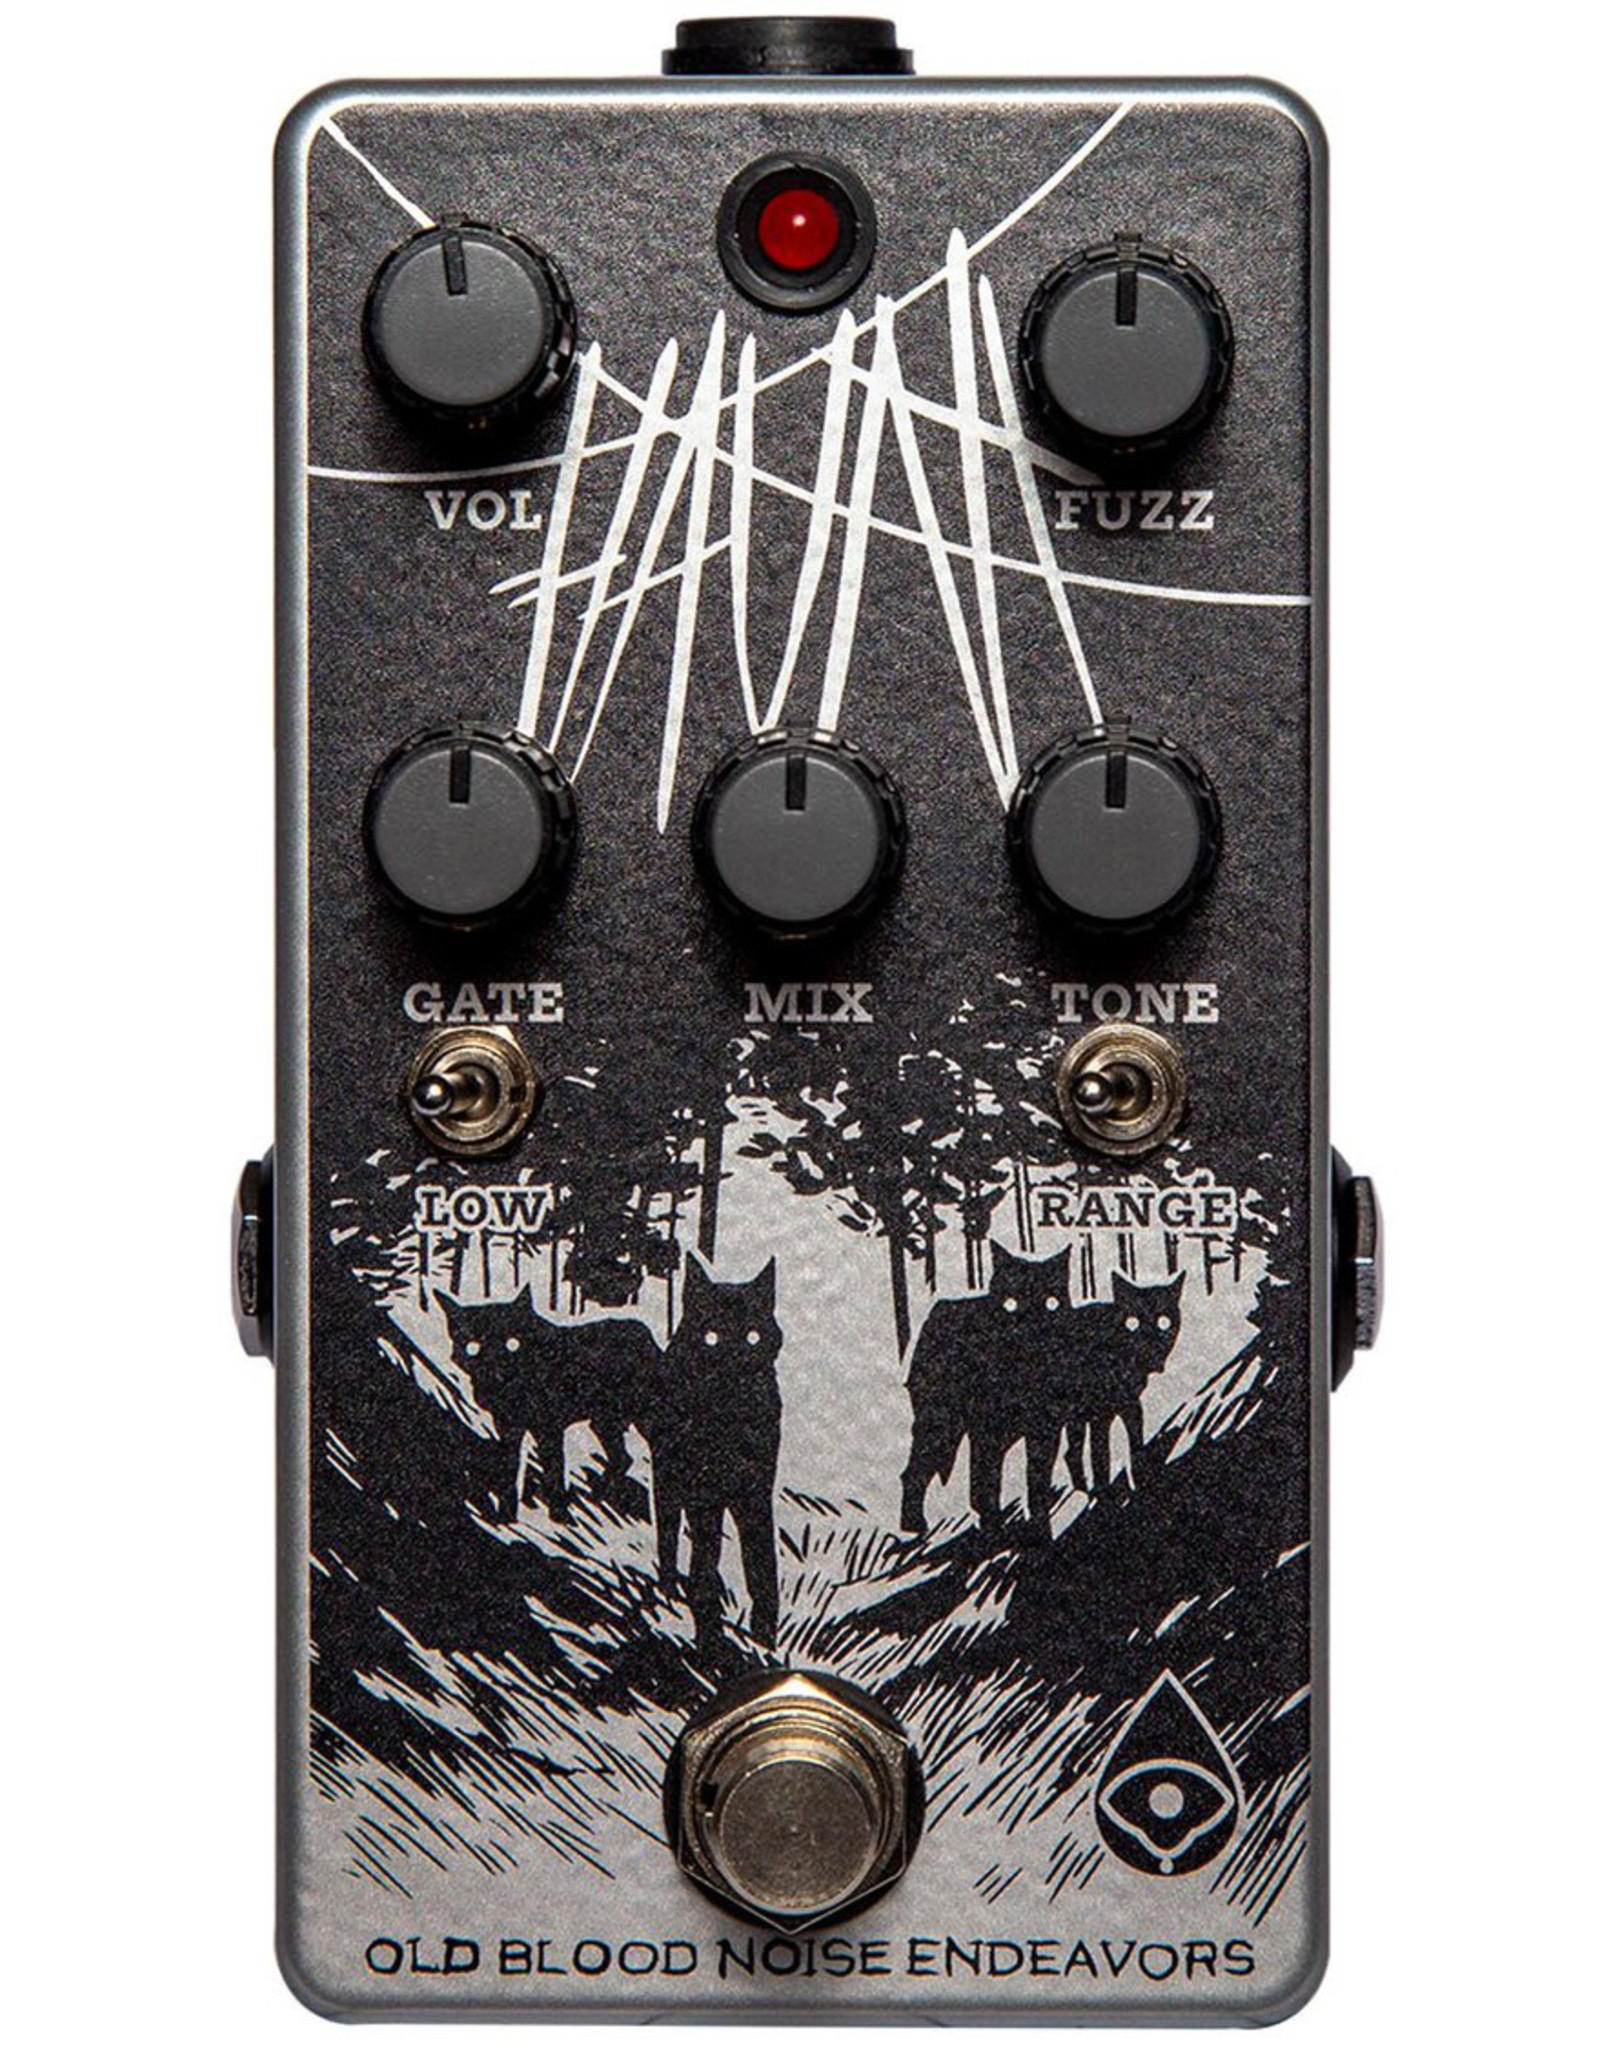 Old Blood Noise Endeavors OBNE Haunt Fuzz w/ Clickless Switching